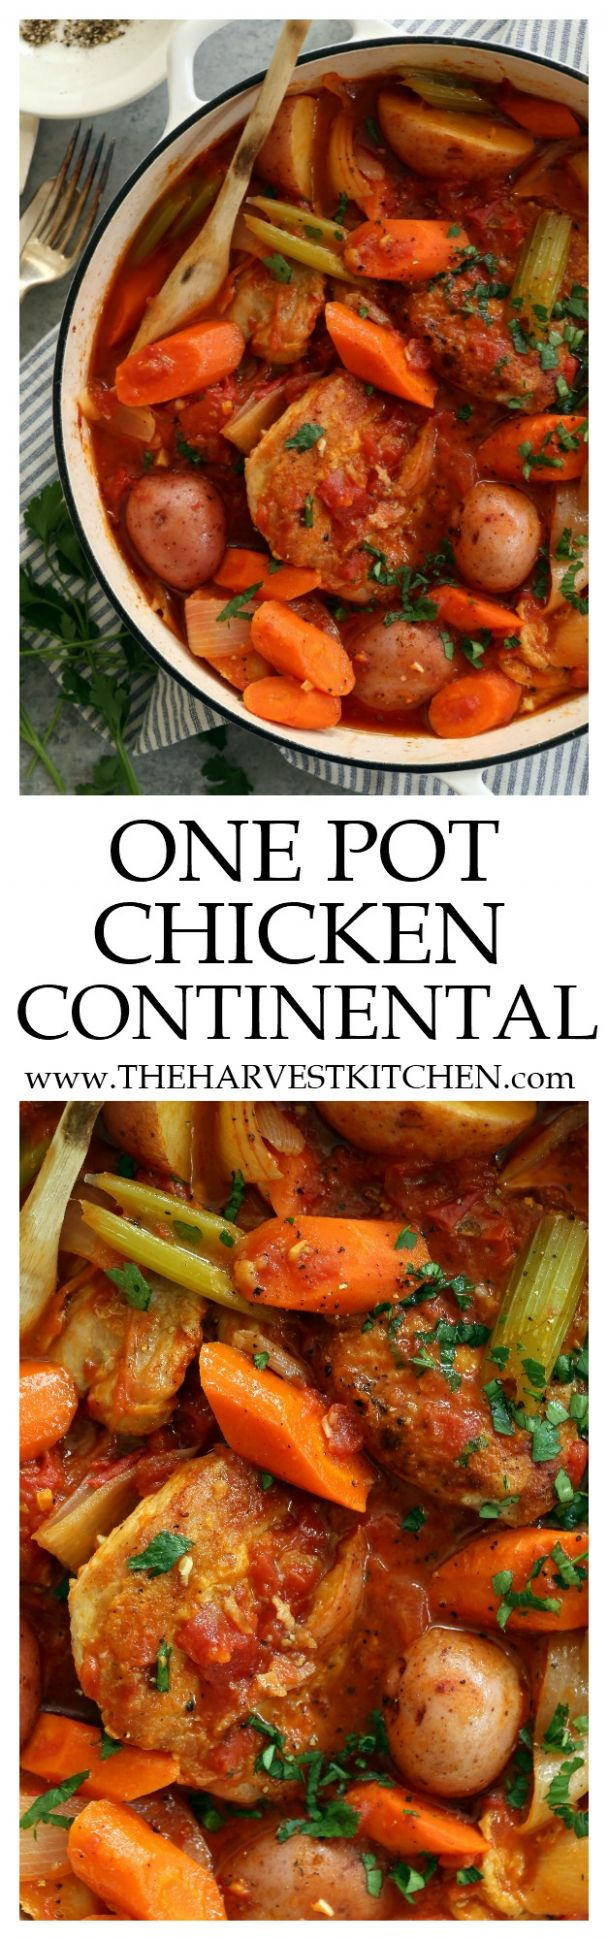 Chicken Continental - The Harvest Kitchen